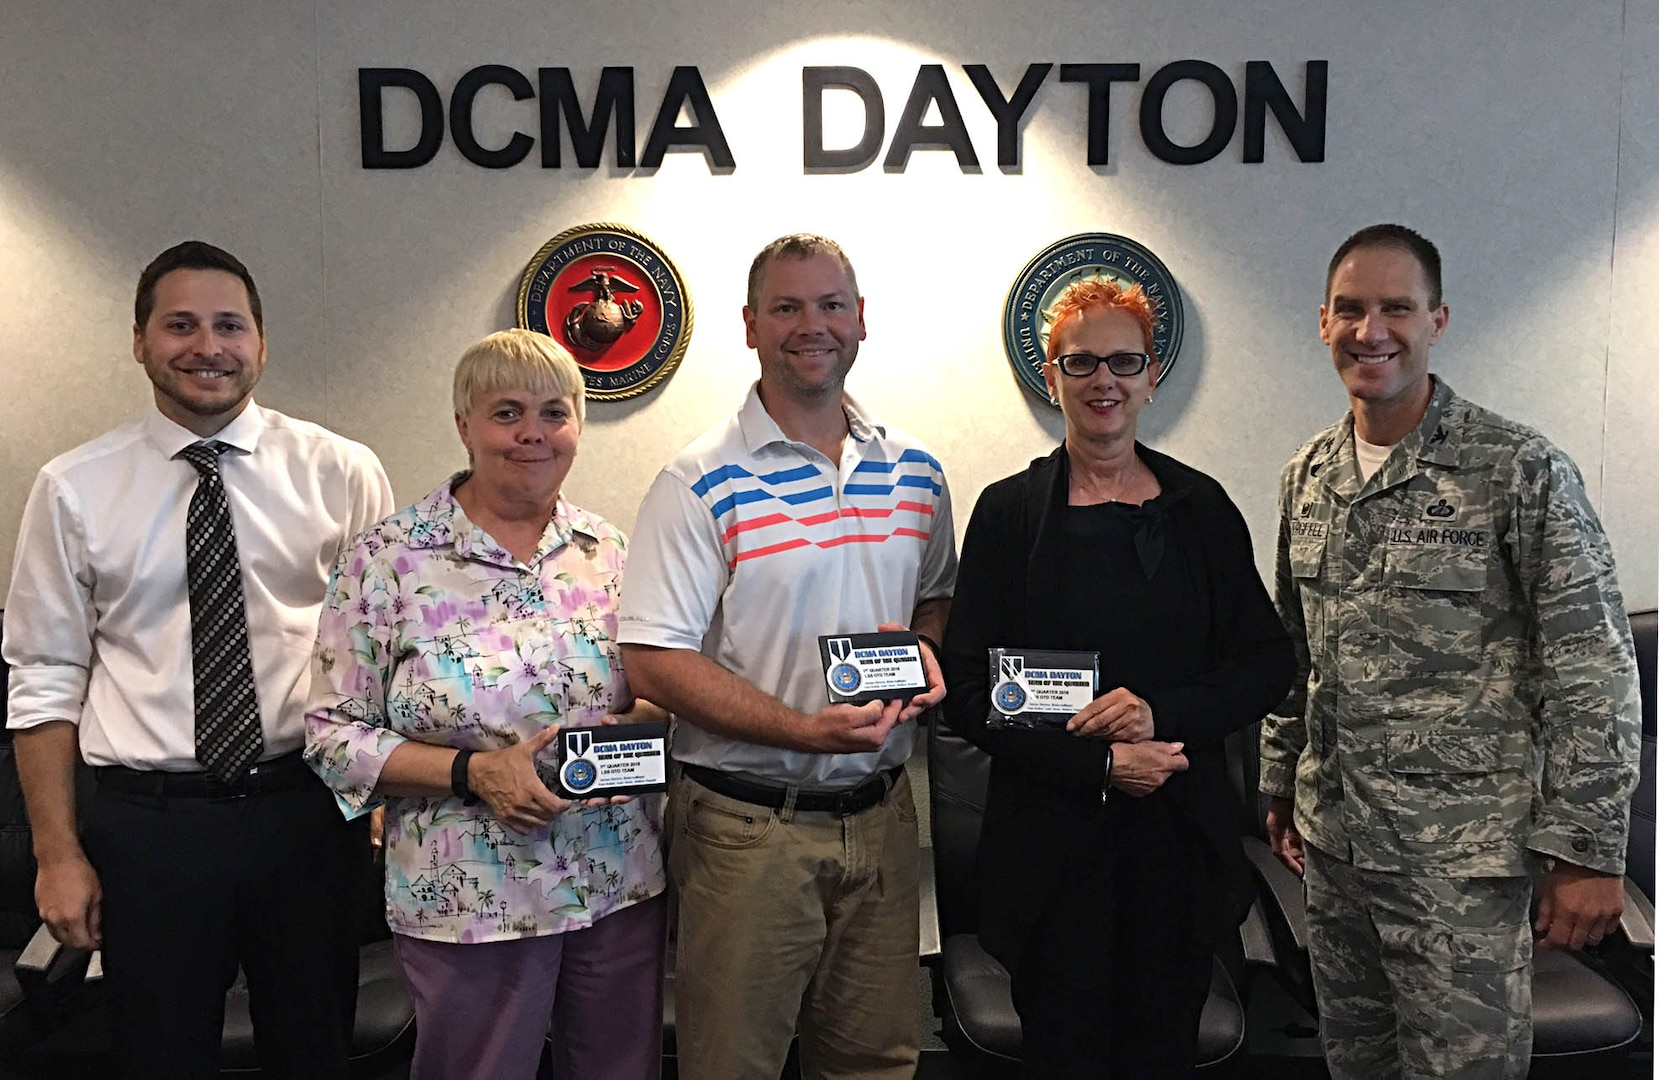 Defense Contract Management Agency Dayton on-time delivery improvement team members Mathew Duguid, Norma Shreves, Gabe Stone and Pam Batlak are honored as Dayton's team of the quarter by their commander, Air Force Col. Eric Obergfell. The team was celebrated for their continuous process improvement efforts. As the team lead, Duguid had the plaques made for his team as a thank you for their hard work. (DCMA photo by Jason Edem)